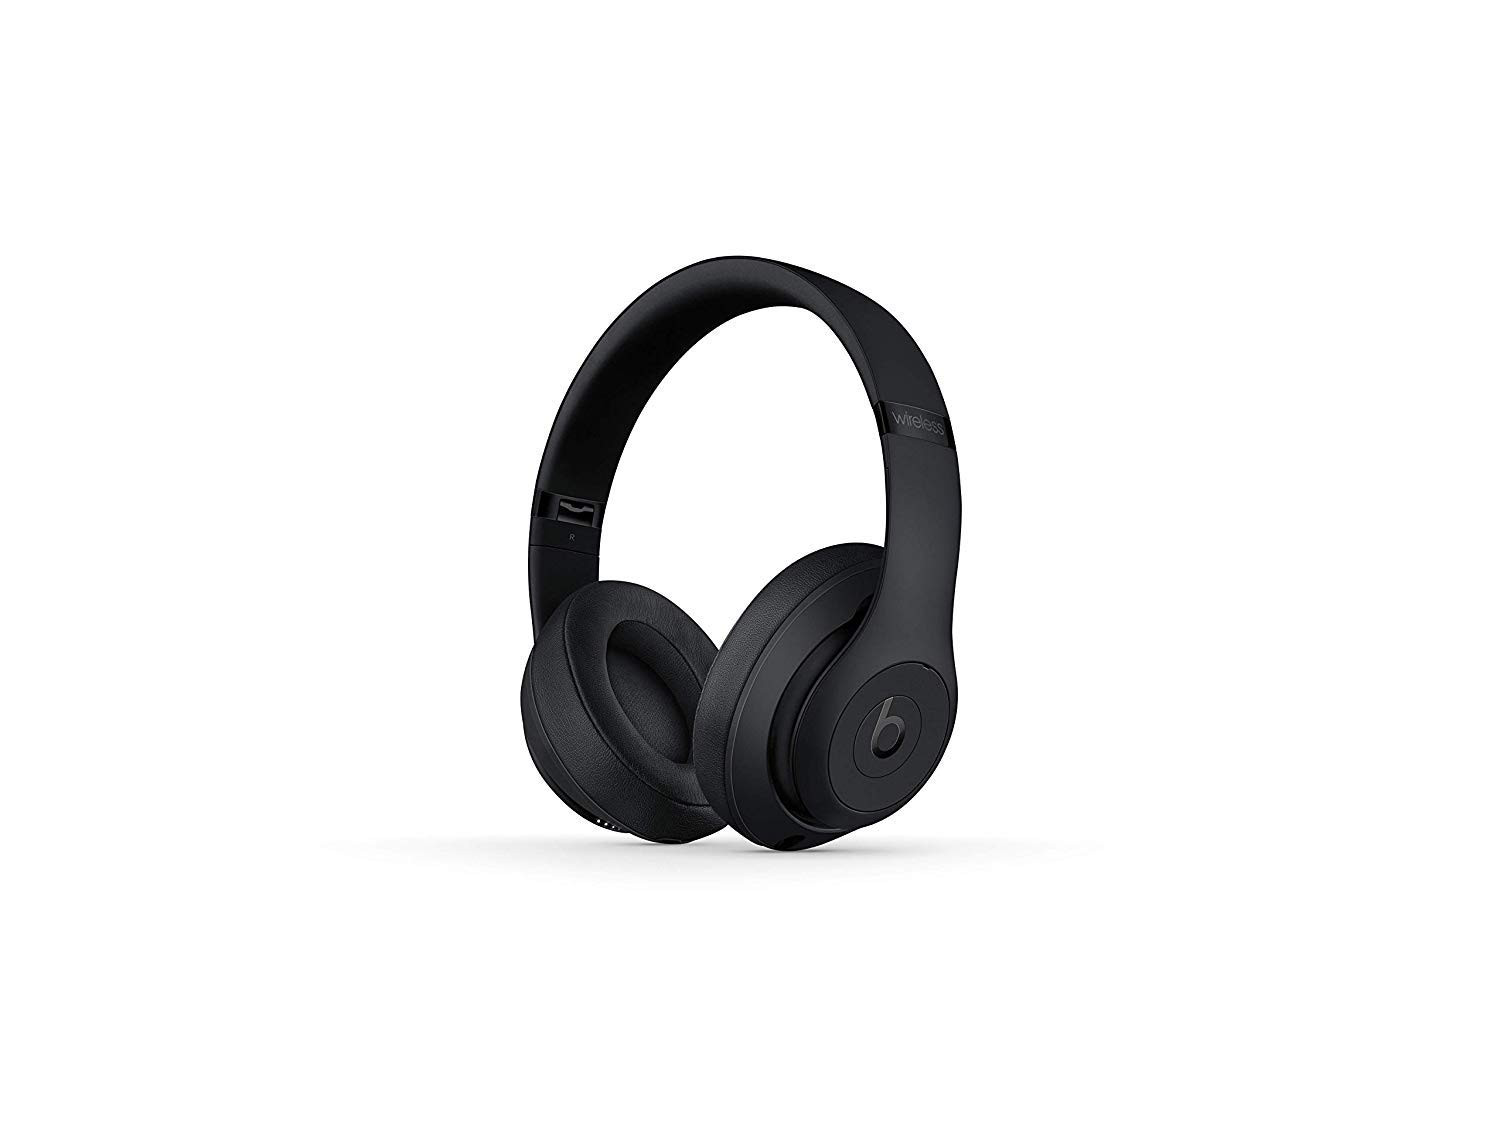 c1e82a2e668 Amazon.com: Beats Studio3 Wireless Noise Canceling Over-Ear Headphones -  Matte Black